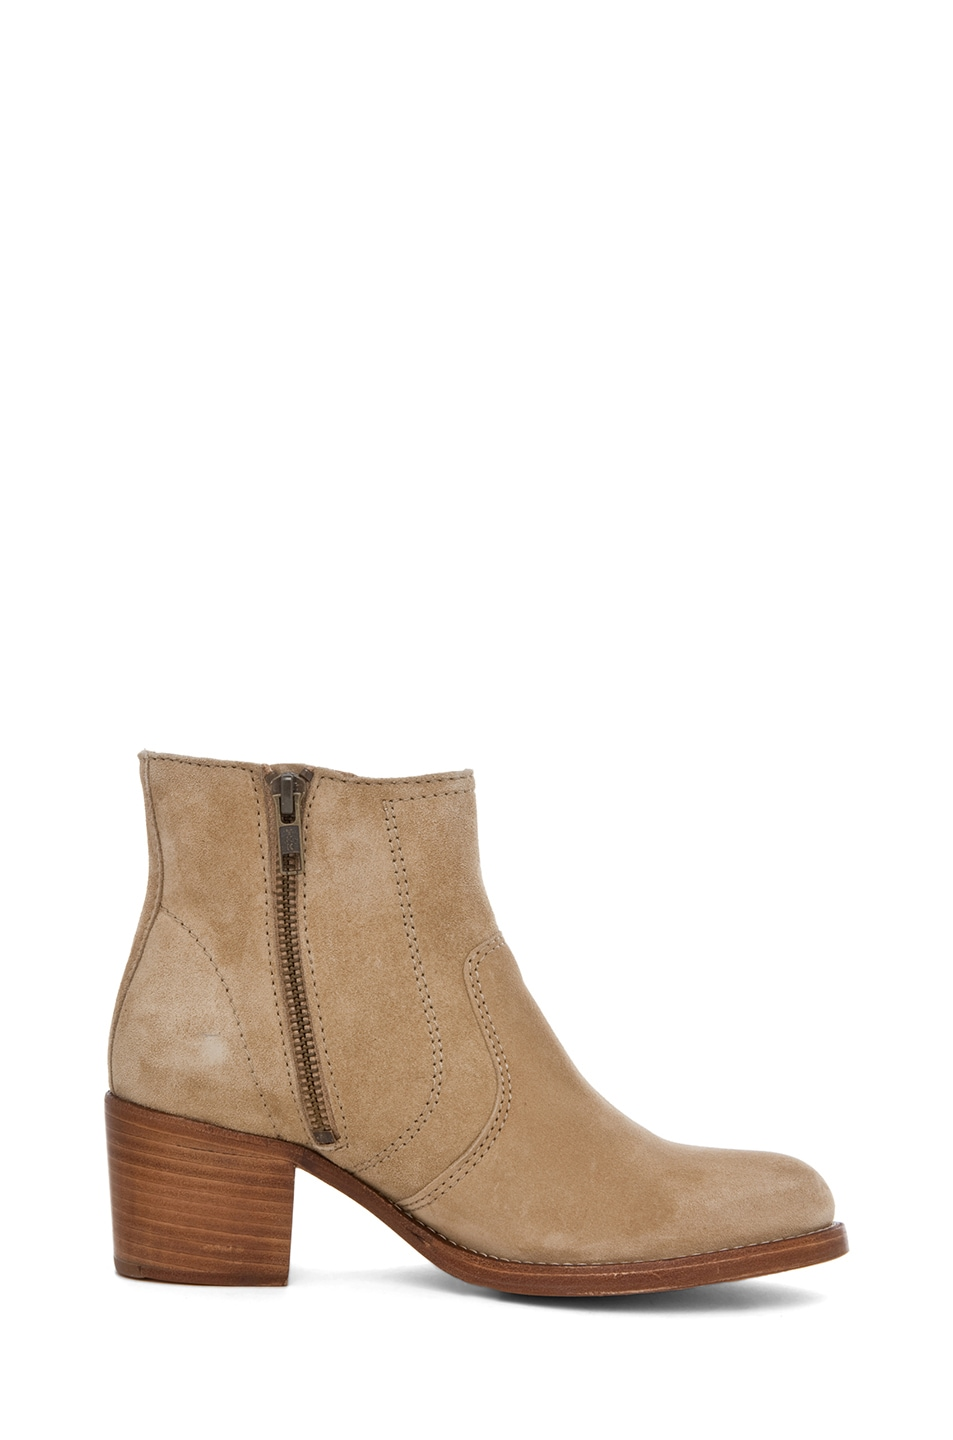 Image 5 of A.P.C. Camarguaise Bootie in Beige